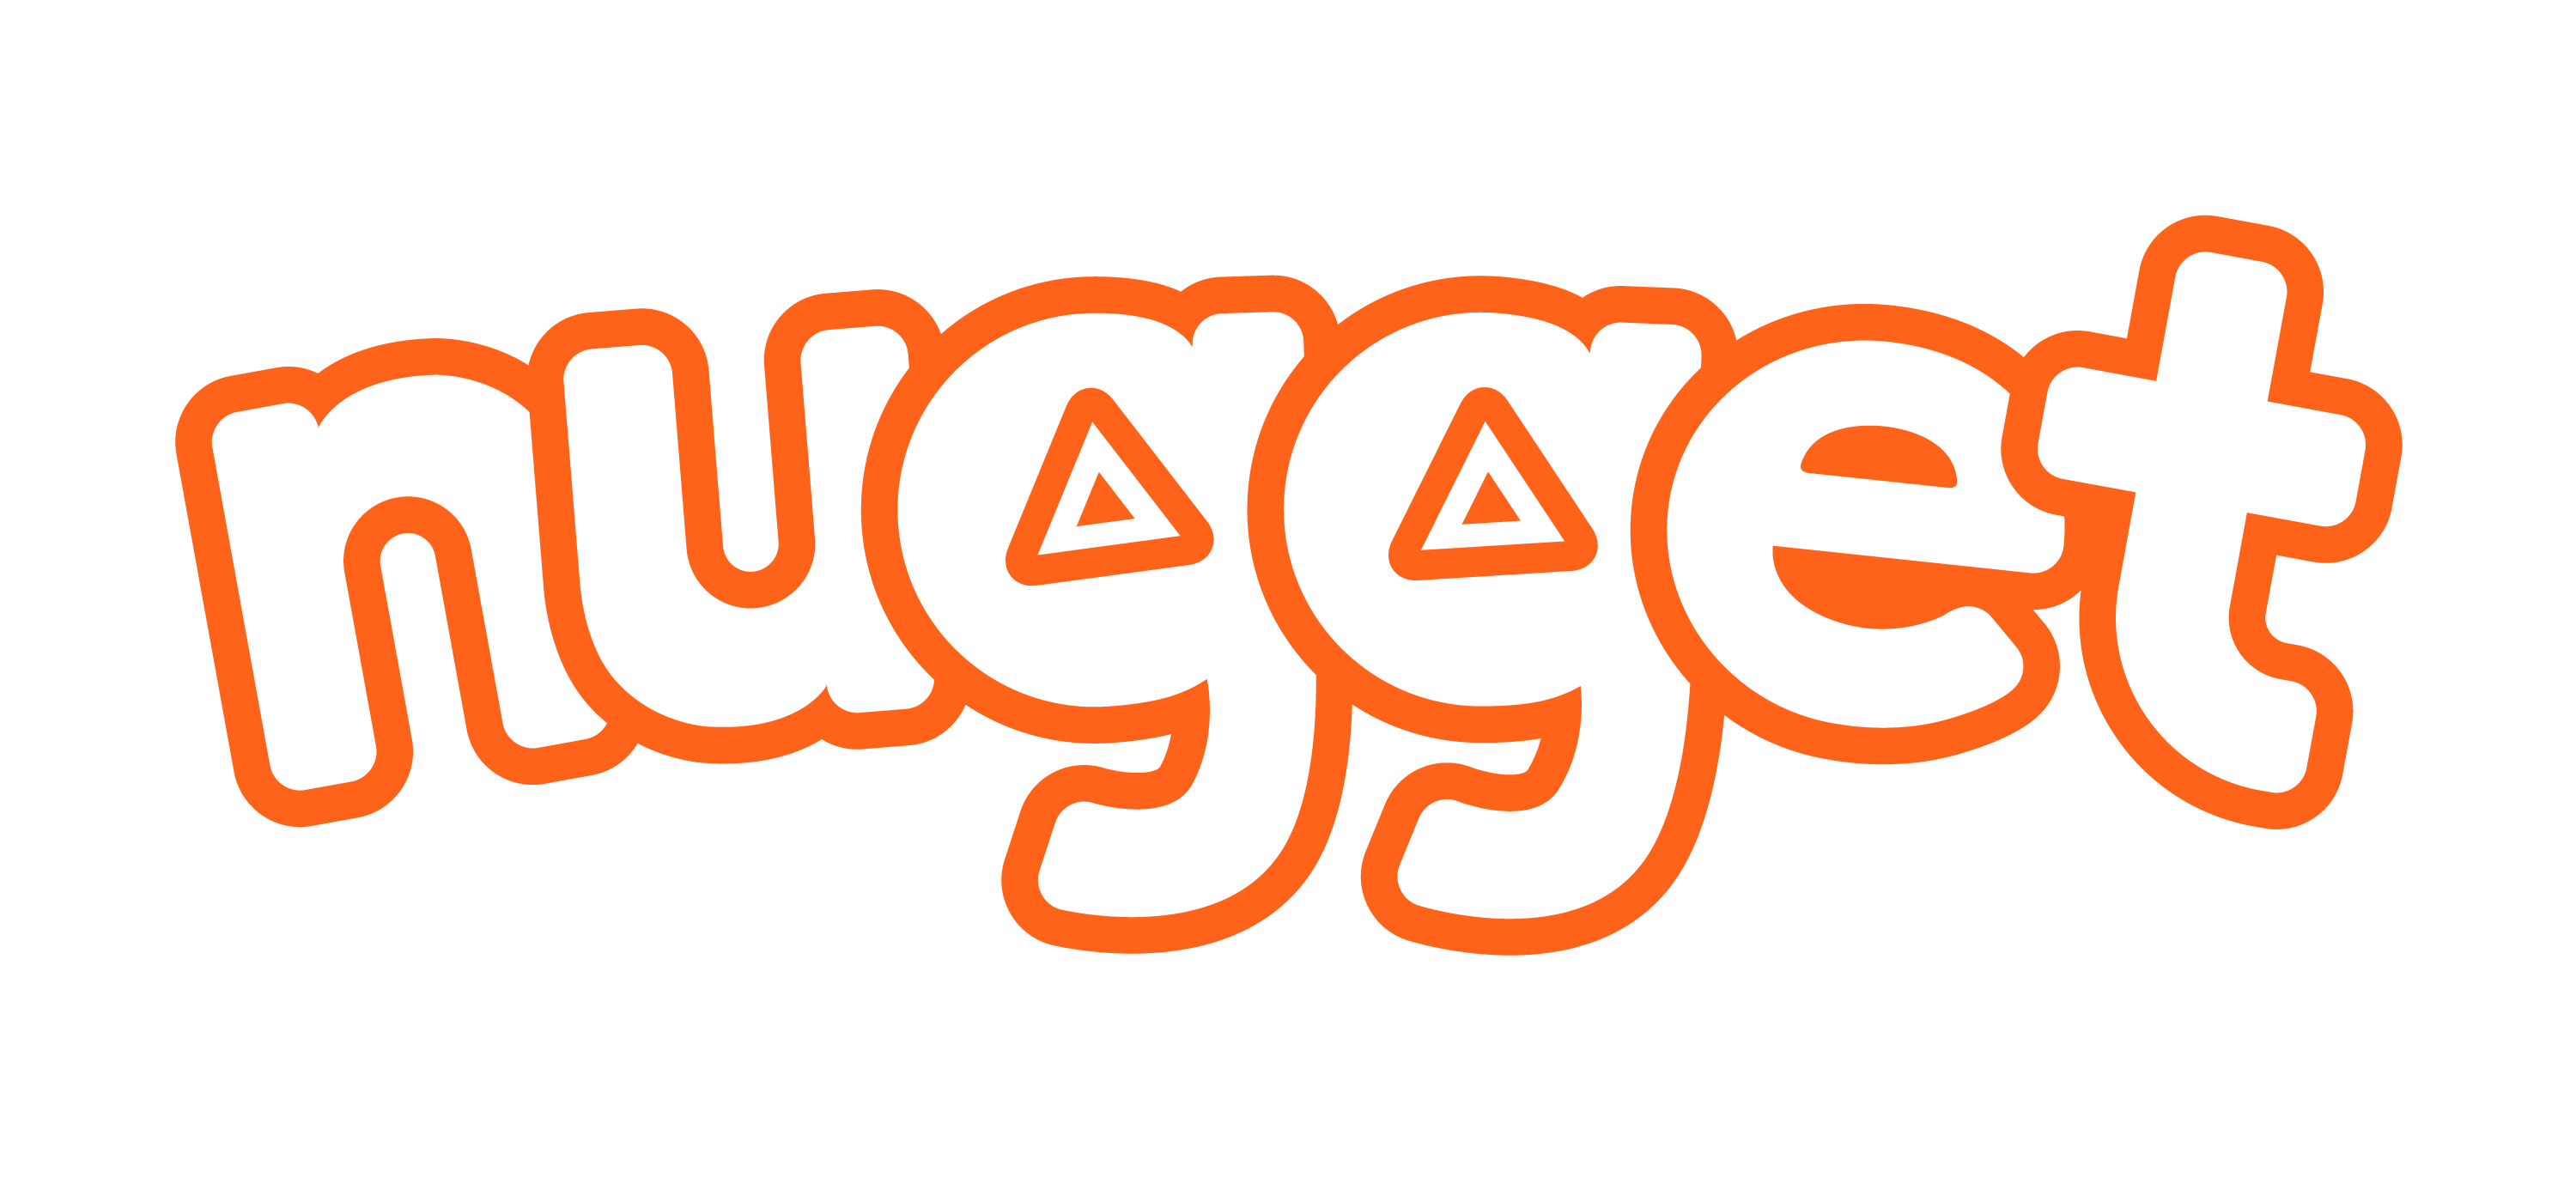 Nugget logo curved trans